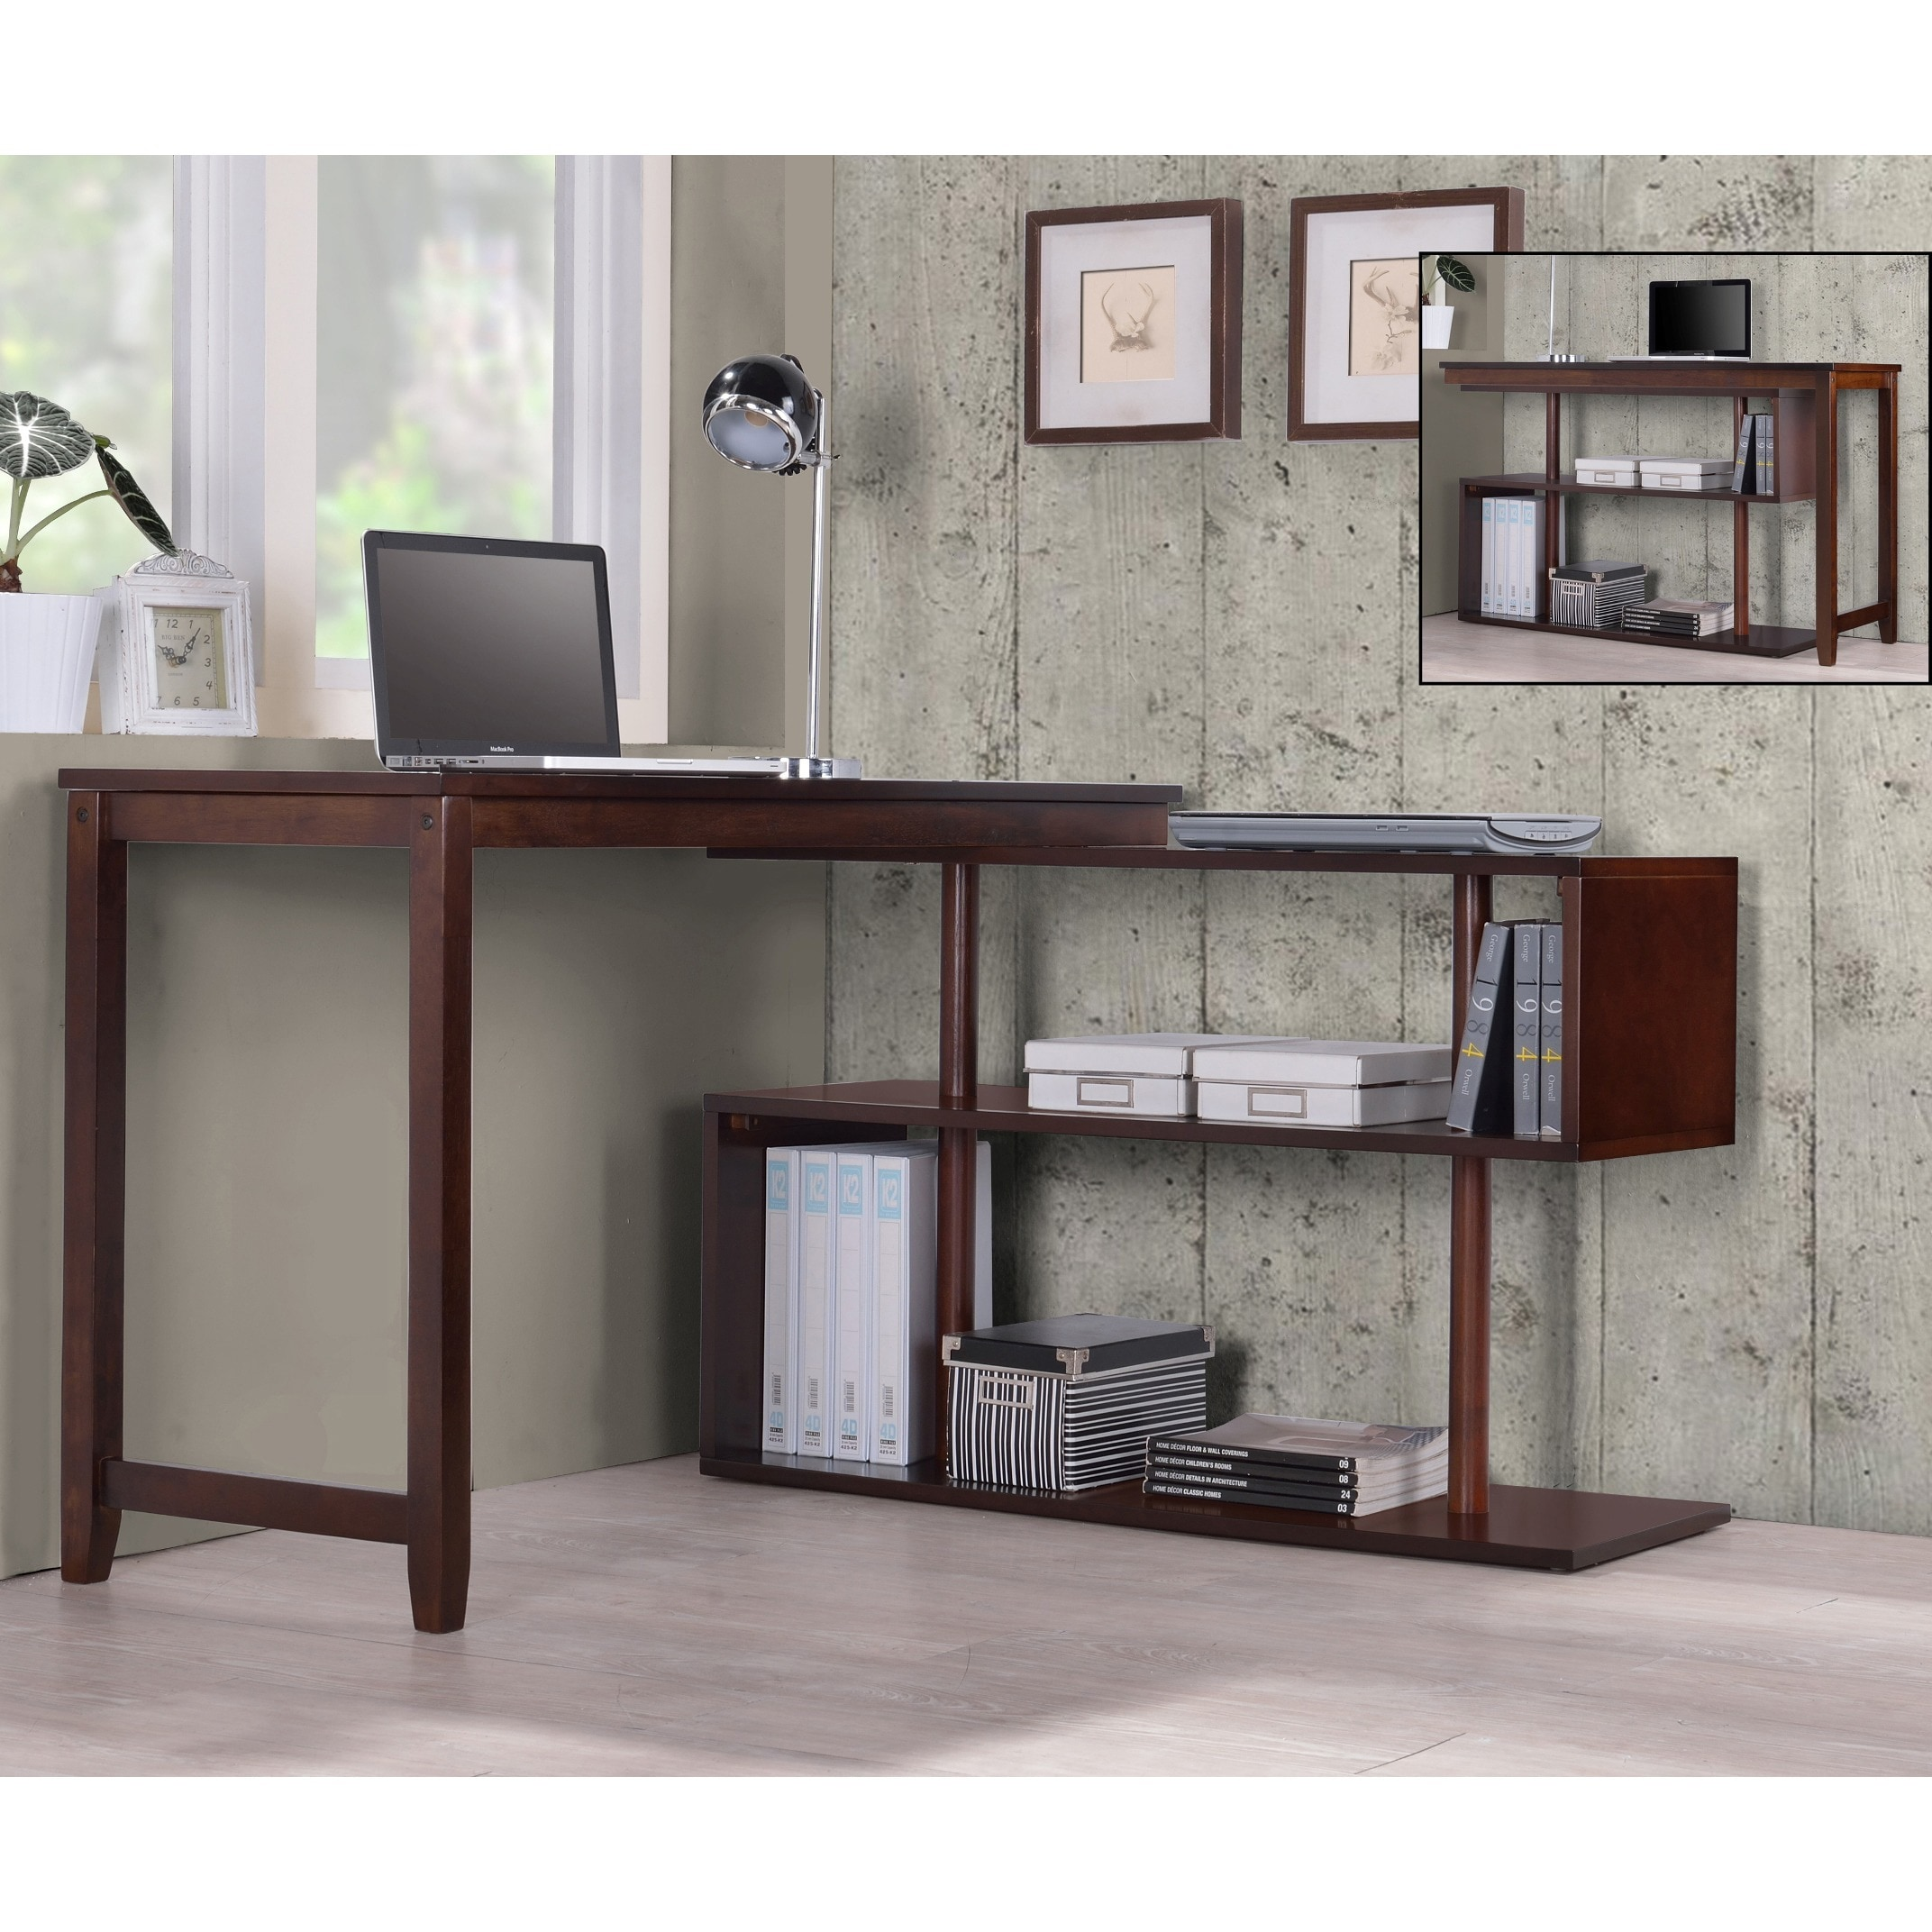 Shop International Caravan Hamburg Contemporary Swing Out Desk Bookshelf